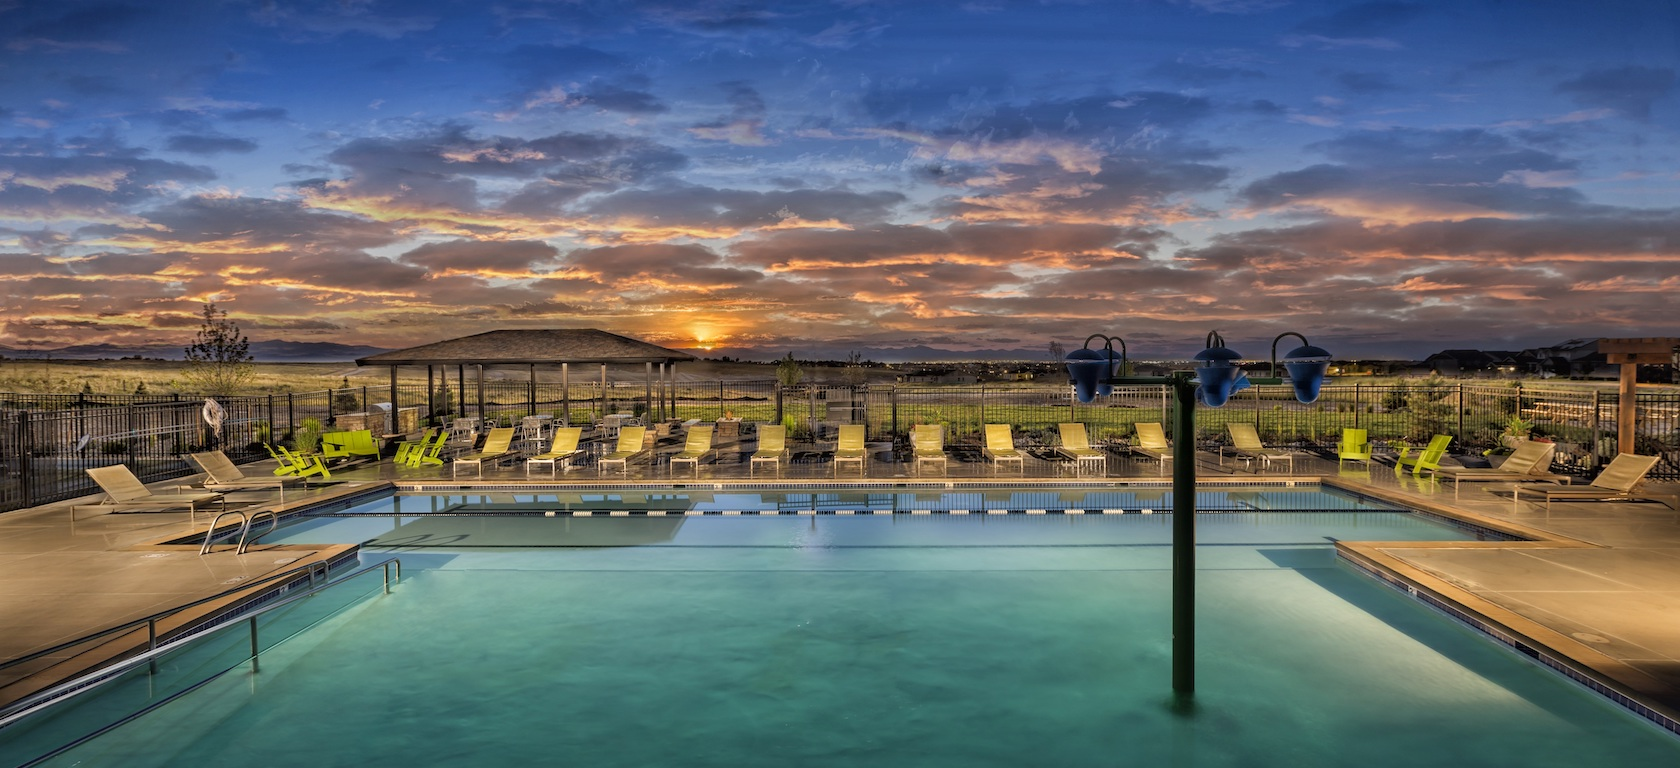 Pool overlooking a sunset the Toll Brothers at Inspiration community.